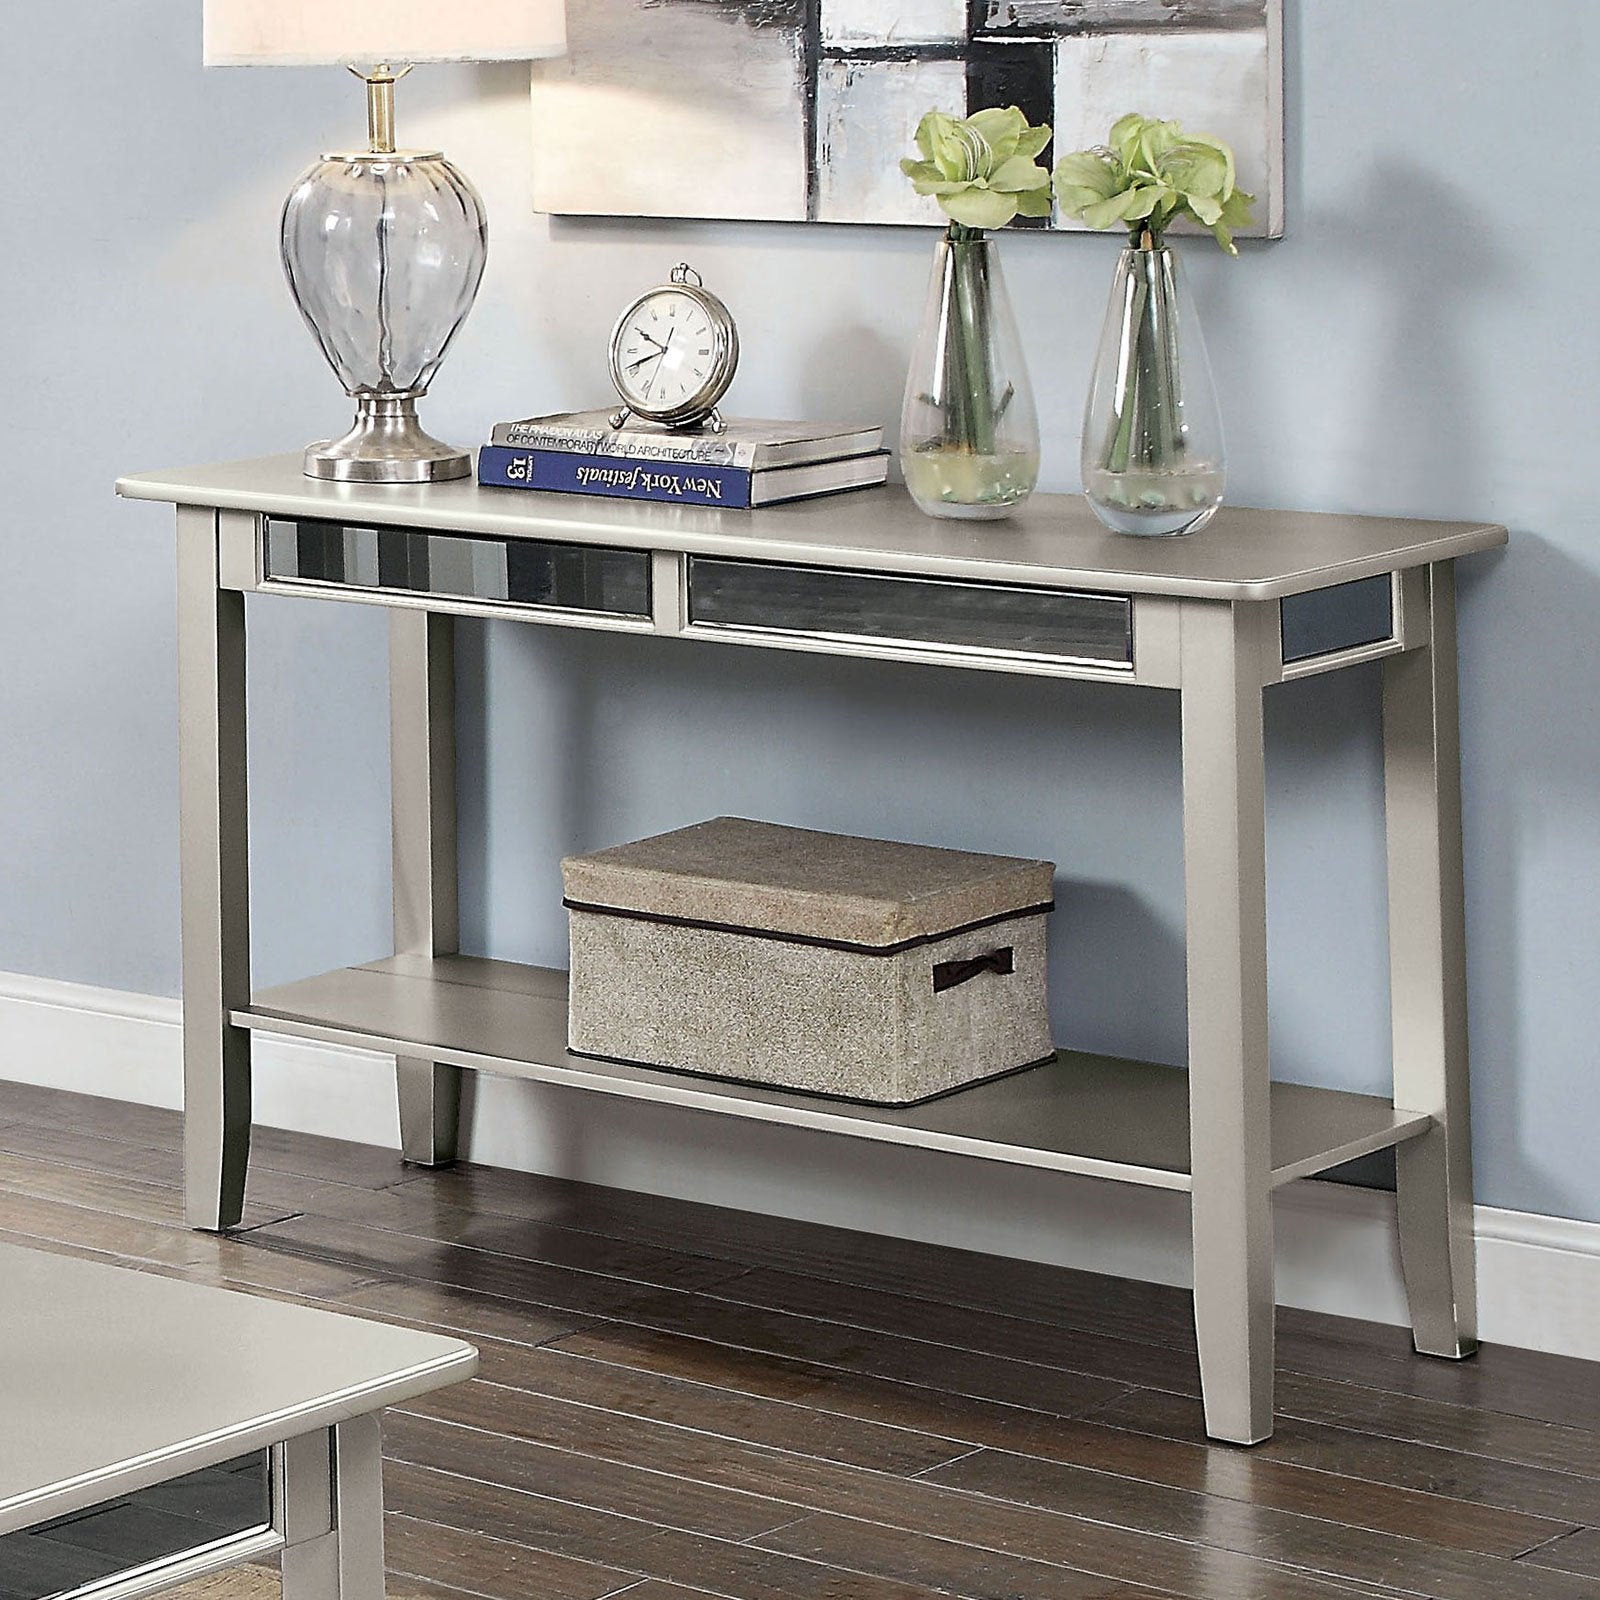 Celestine Sofa Table - InteriorDesignsToGo.com